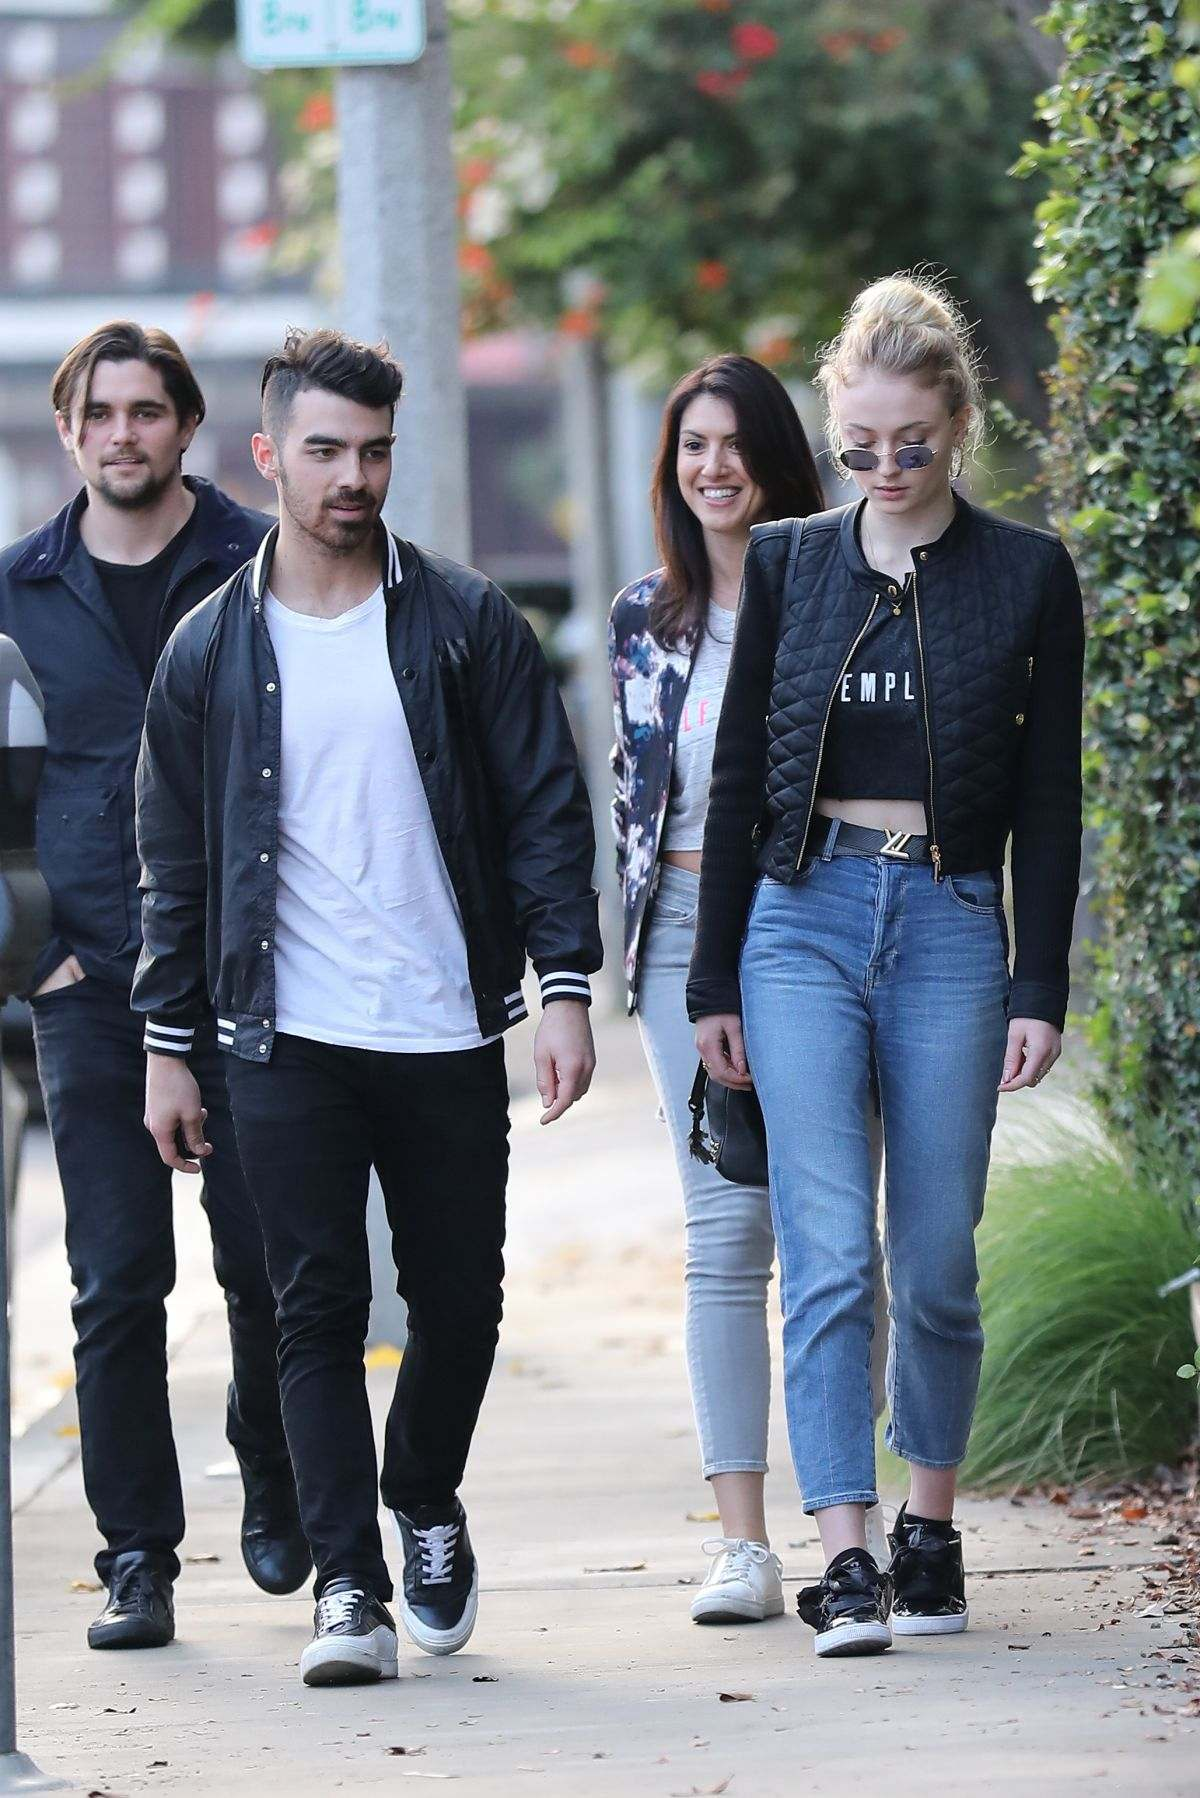 Joe Jonas and HBO's Game of Thrones' Sophia Turner in LA 01.06.17